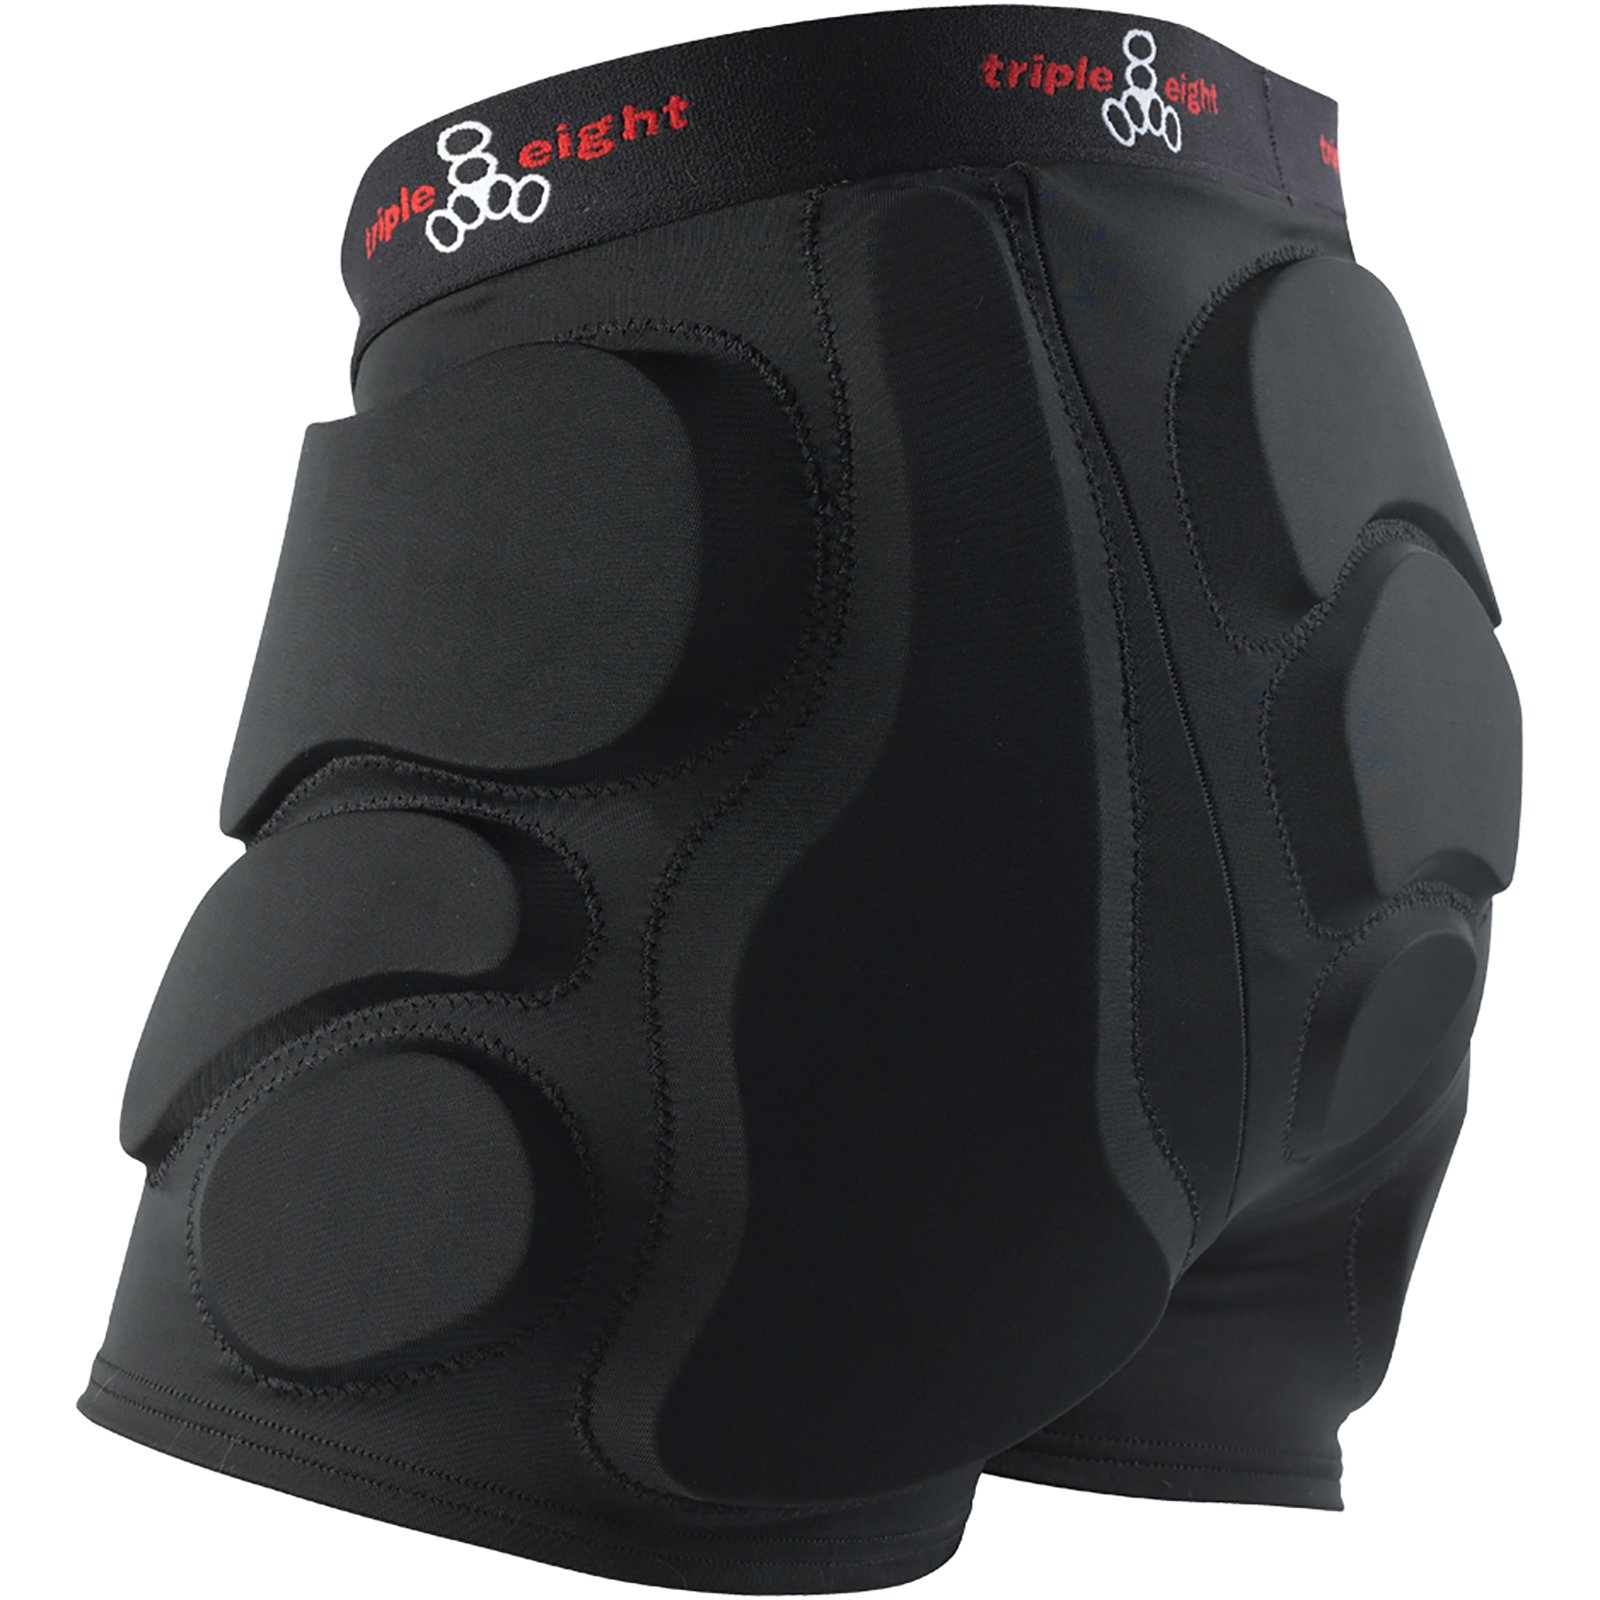 Triple 8 Roller Derby Bumsaver Black Hip Pads - X-Small/Youth